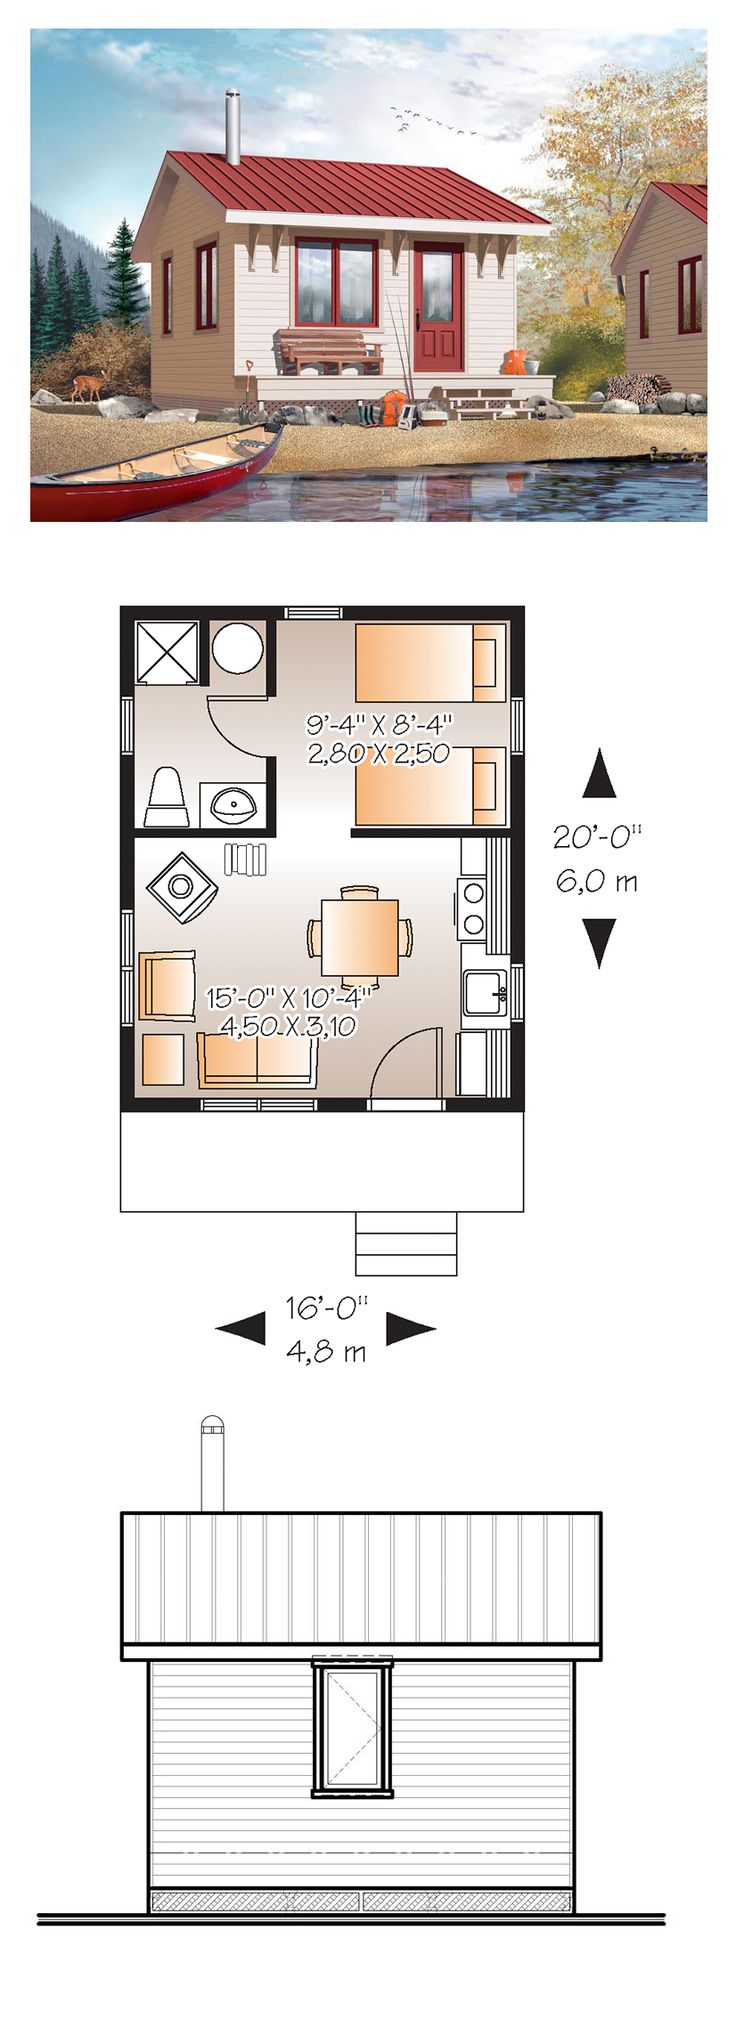 17 B Sta Bilder Om Attefallshus P Pinterest Layout: small house pictures and plans